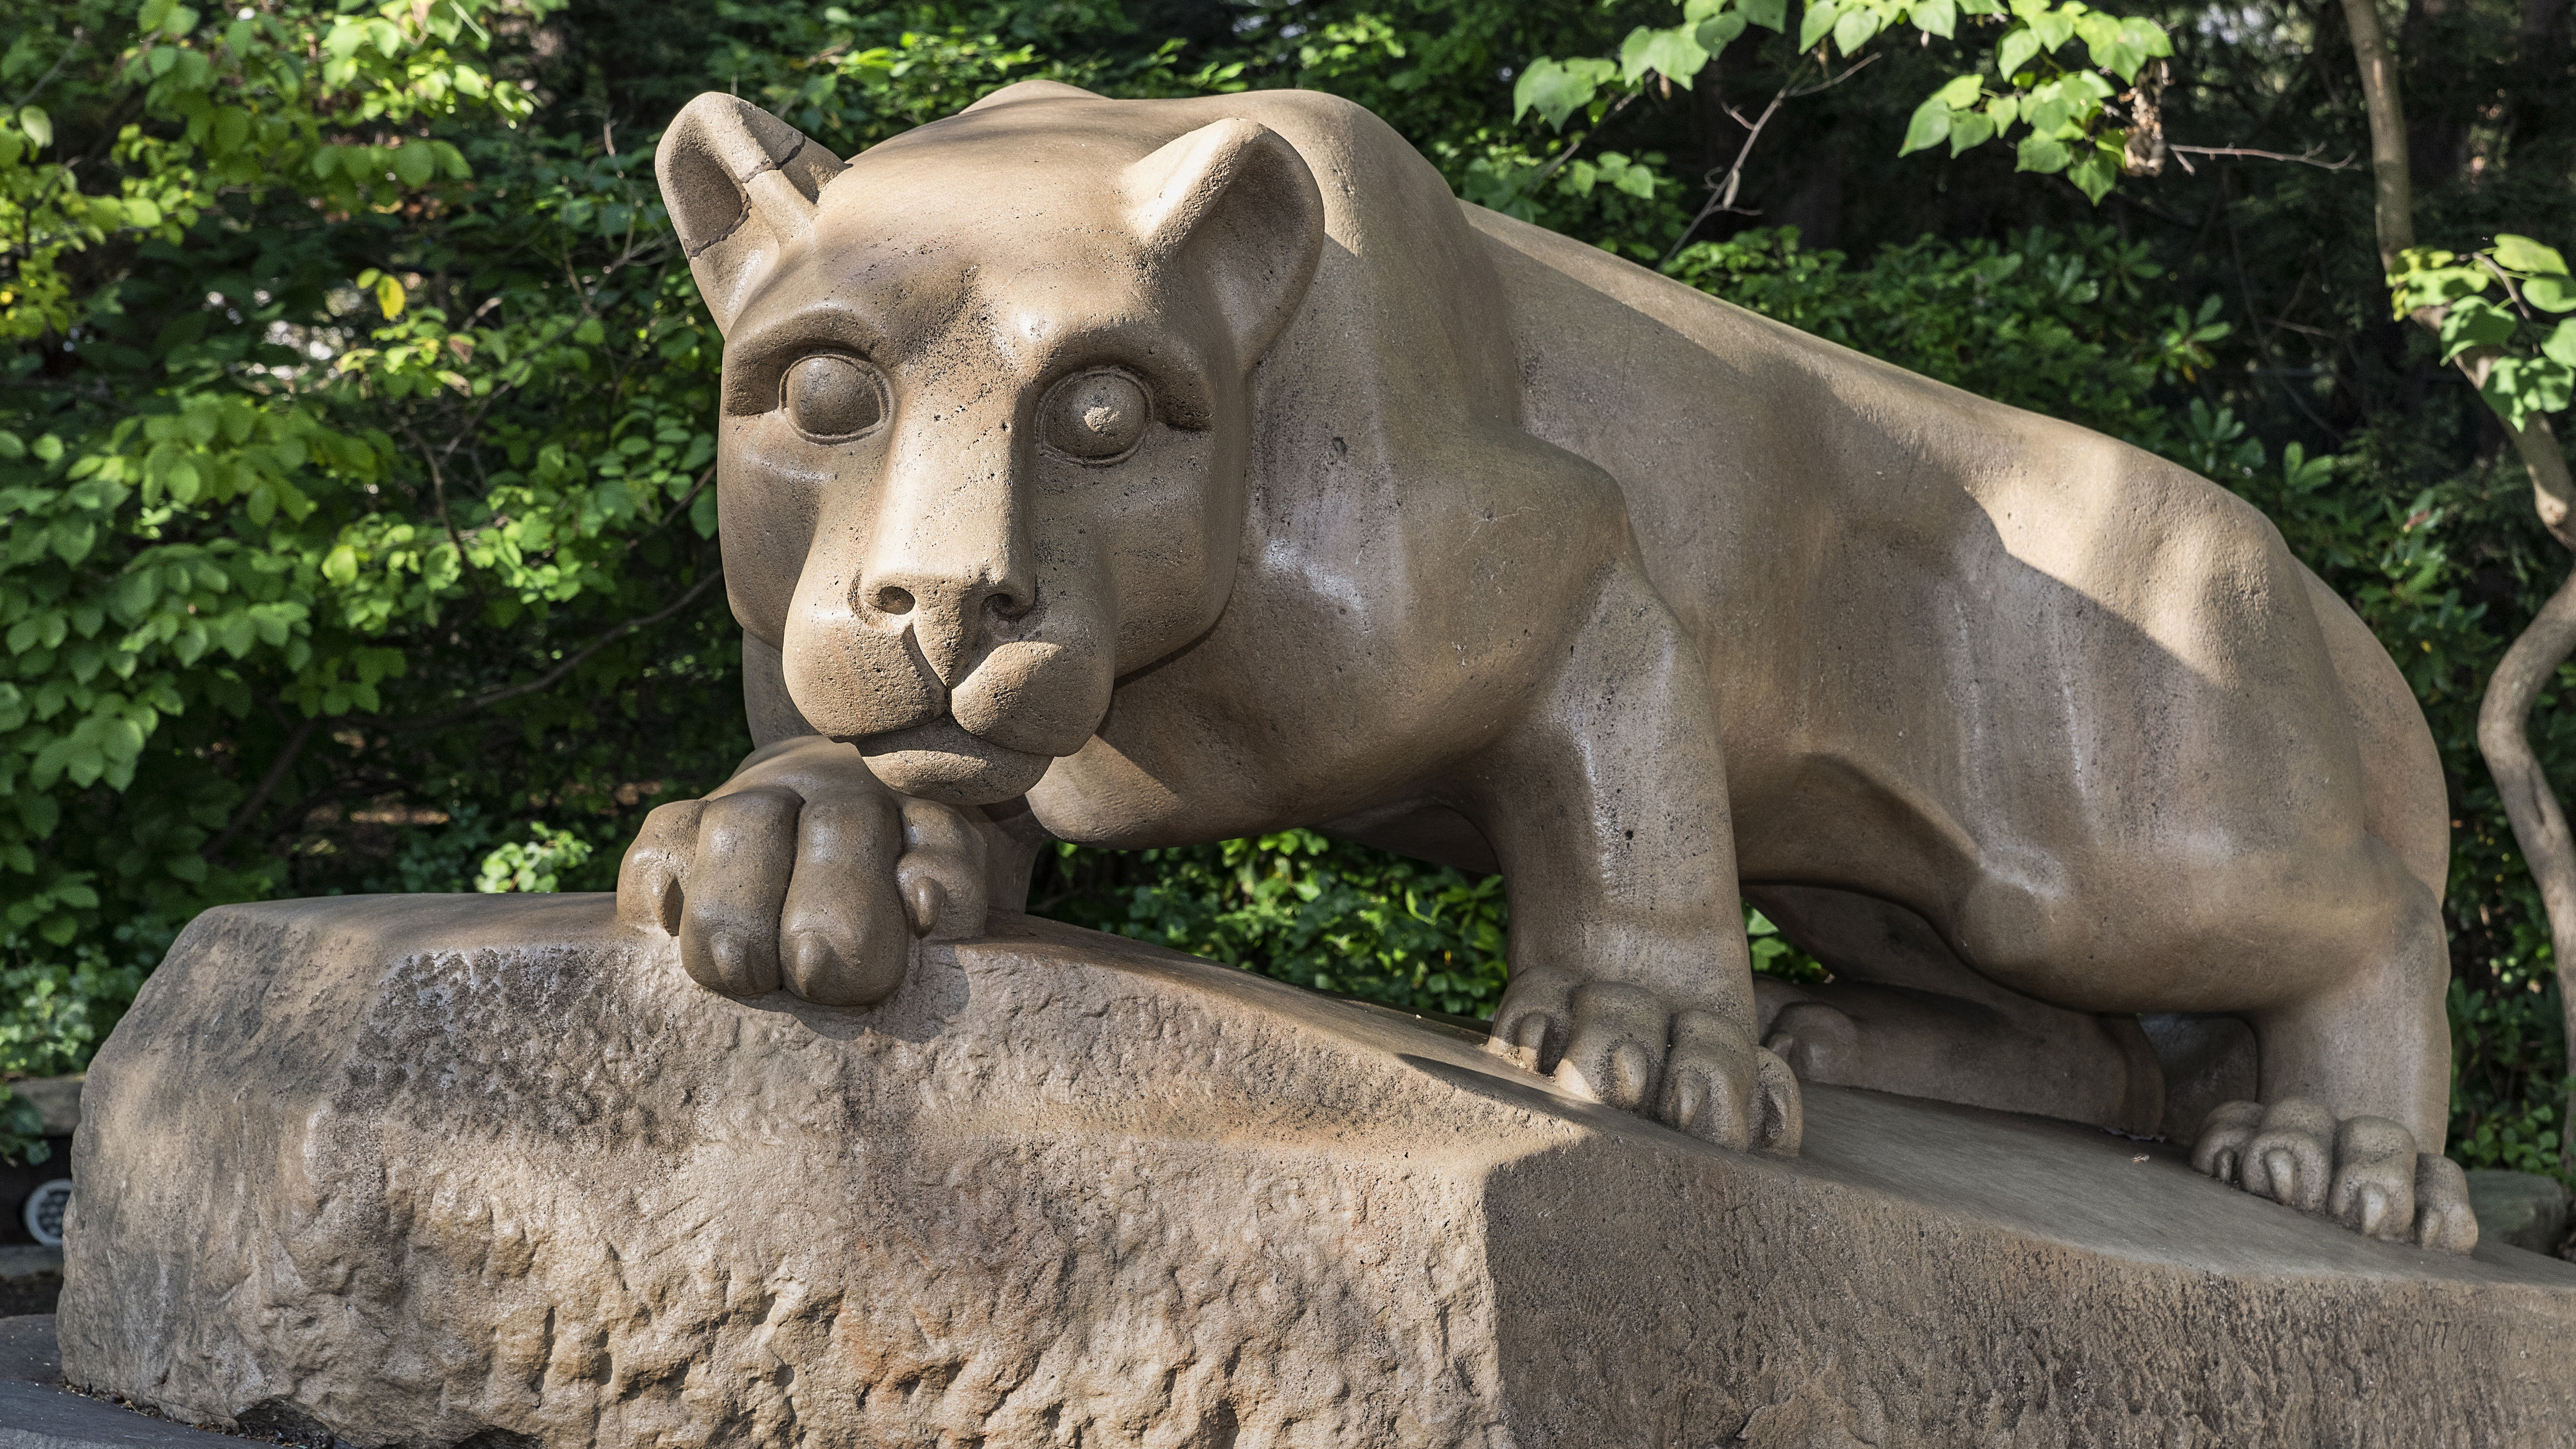 Penn State Students Must Sign a COVID-19 Waiver, Could Be Required to Take Test